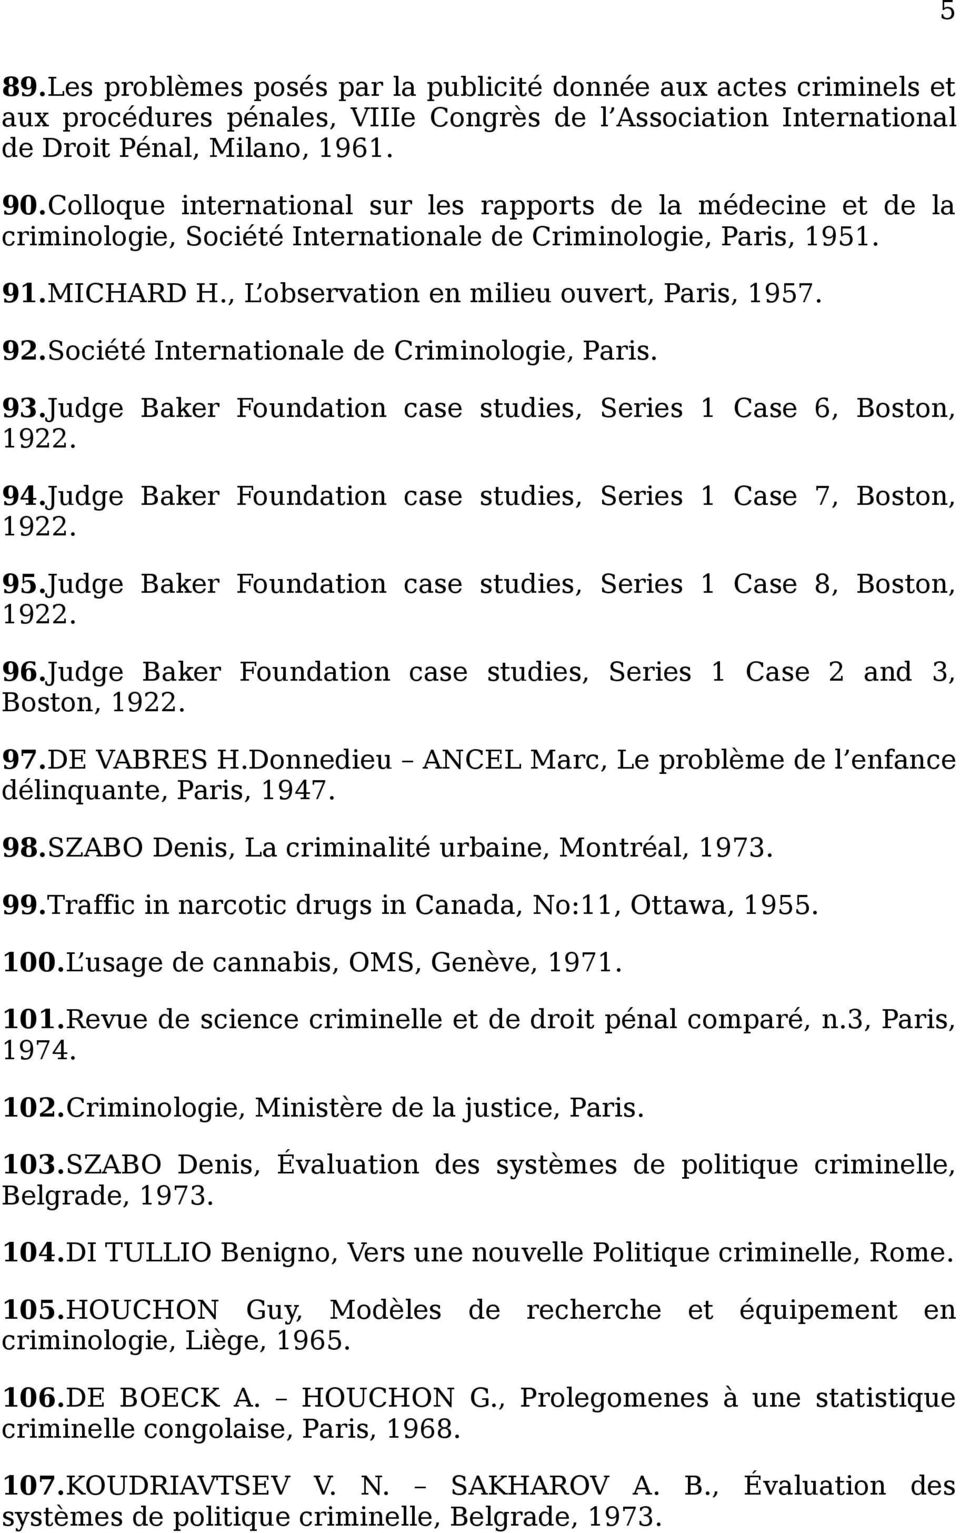 Société Internationale de Criminologie, Paris. 93.Judge Baker Foundation case studies, Series 1 Case 6, Boston, 1922. 94.Judge Baker Foundation case studies, Series 1 Case 7, Boston, 1922. 95.